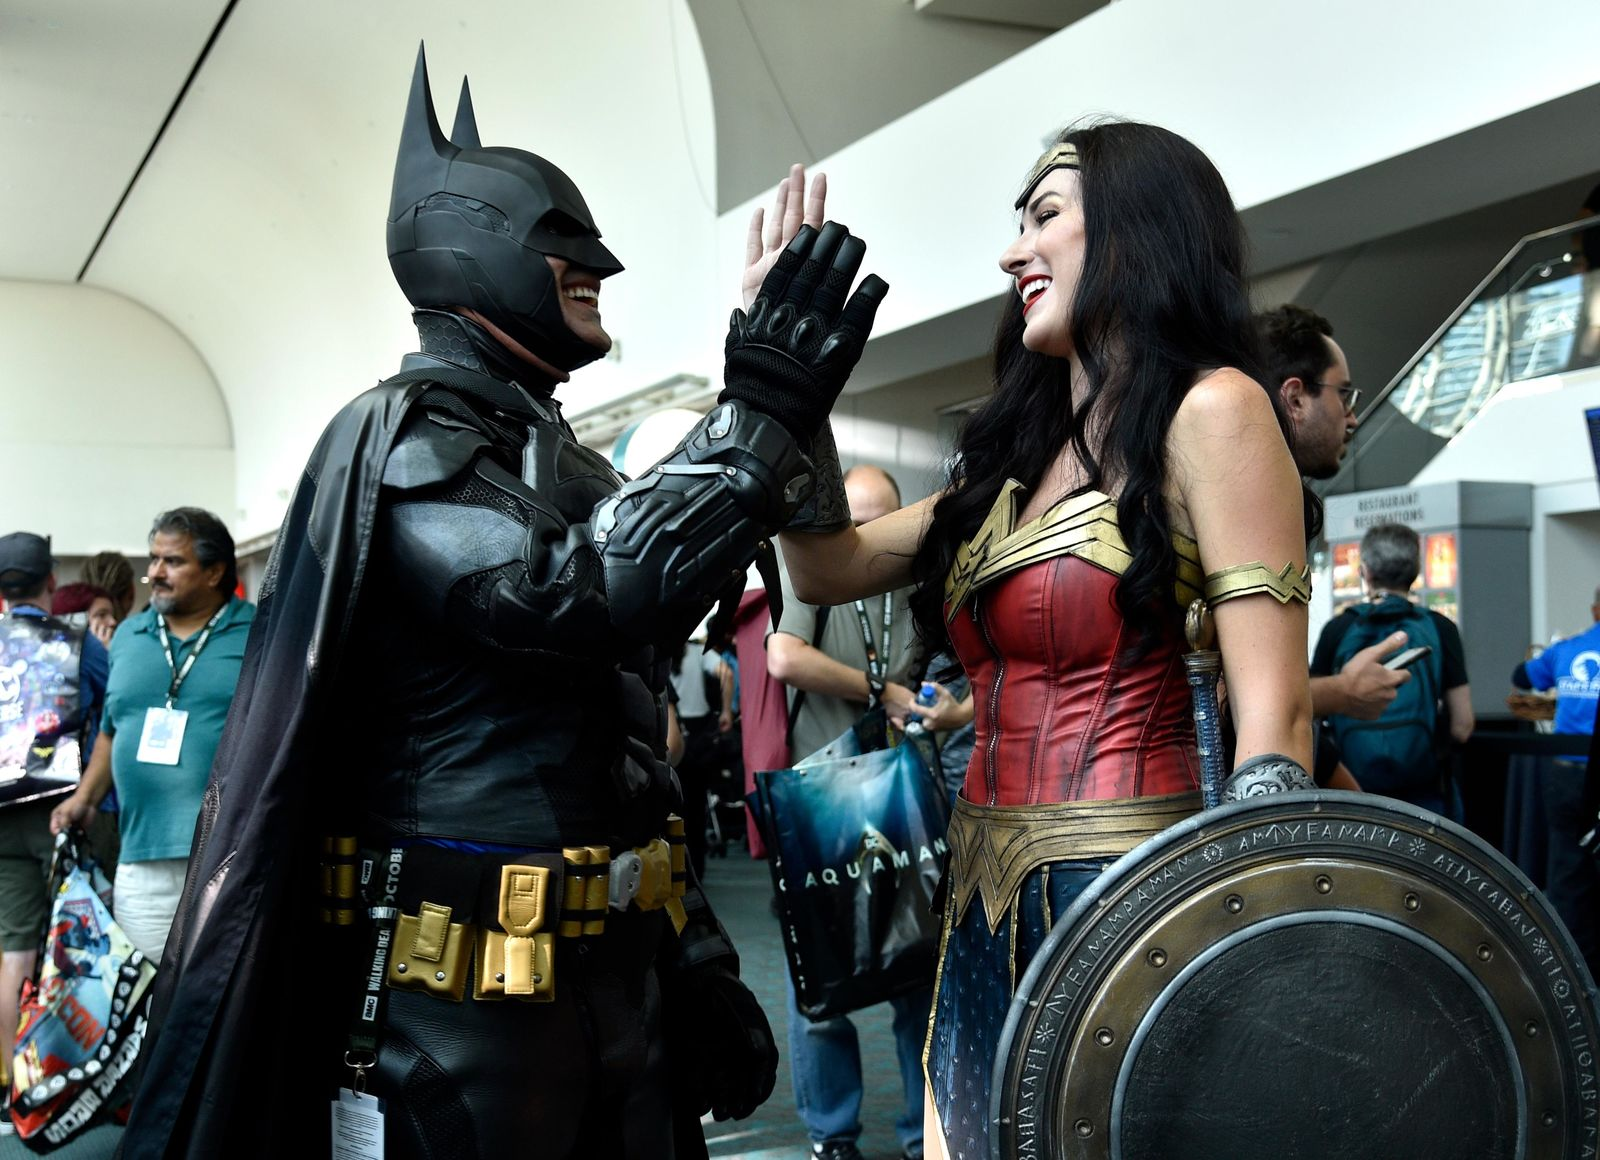 Armando Abarca, left, dressed as Batman, and Jessica Rose Davis, dressed as Wonder Woman, of Los Angeles, high five each other as they attend day one of Comic-Con International on Thursday, July 19, 2018, in San Diego.(Photo by Chris Pizzello/Invision/AP)